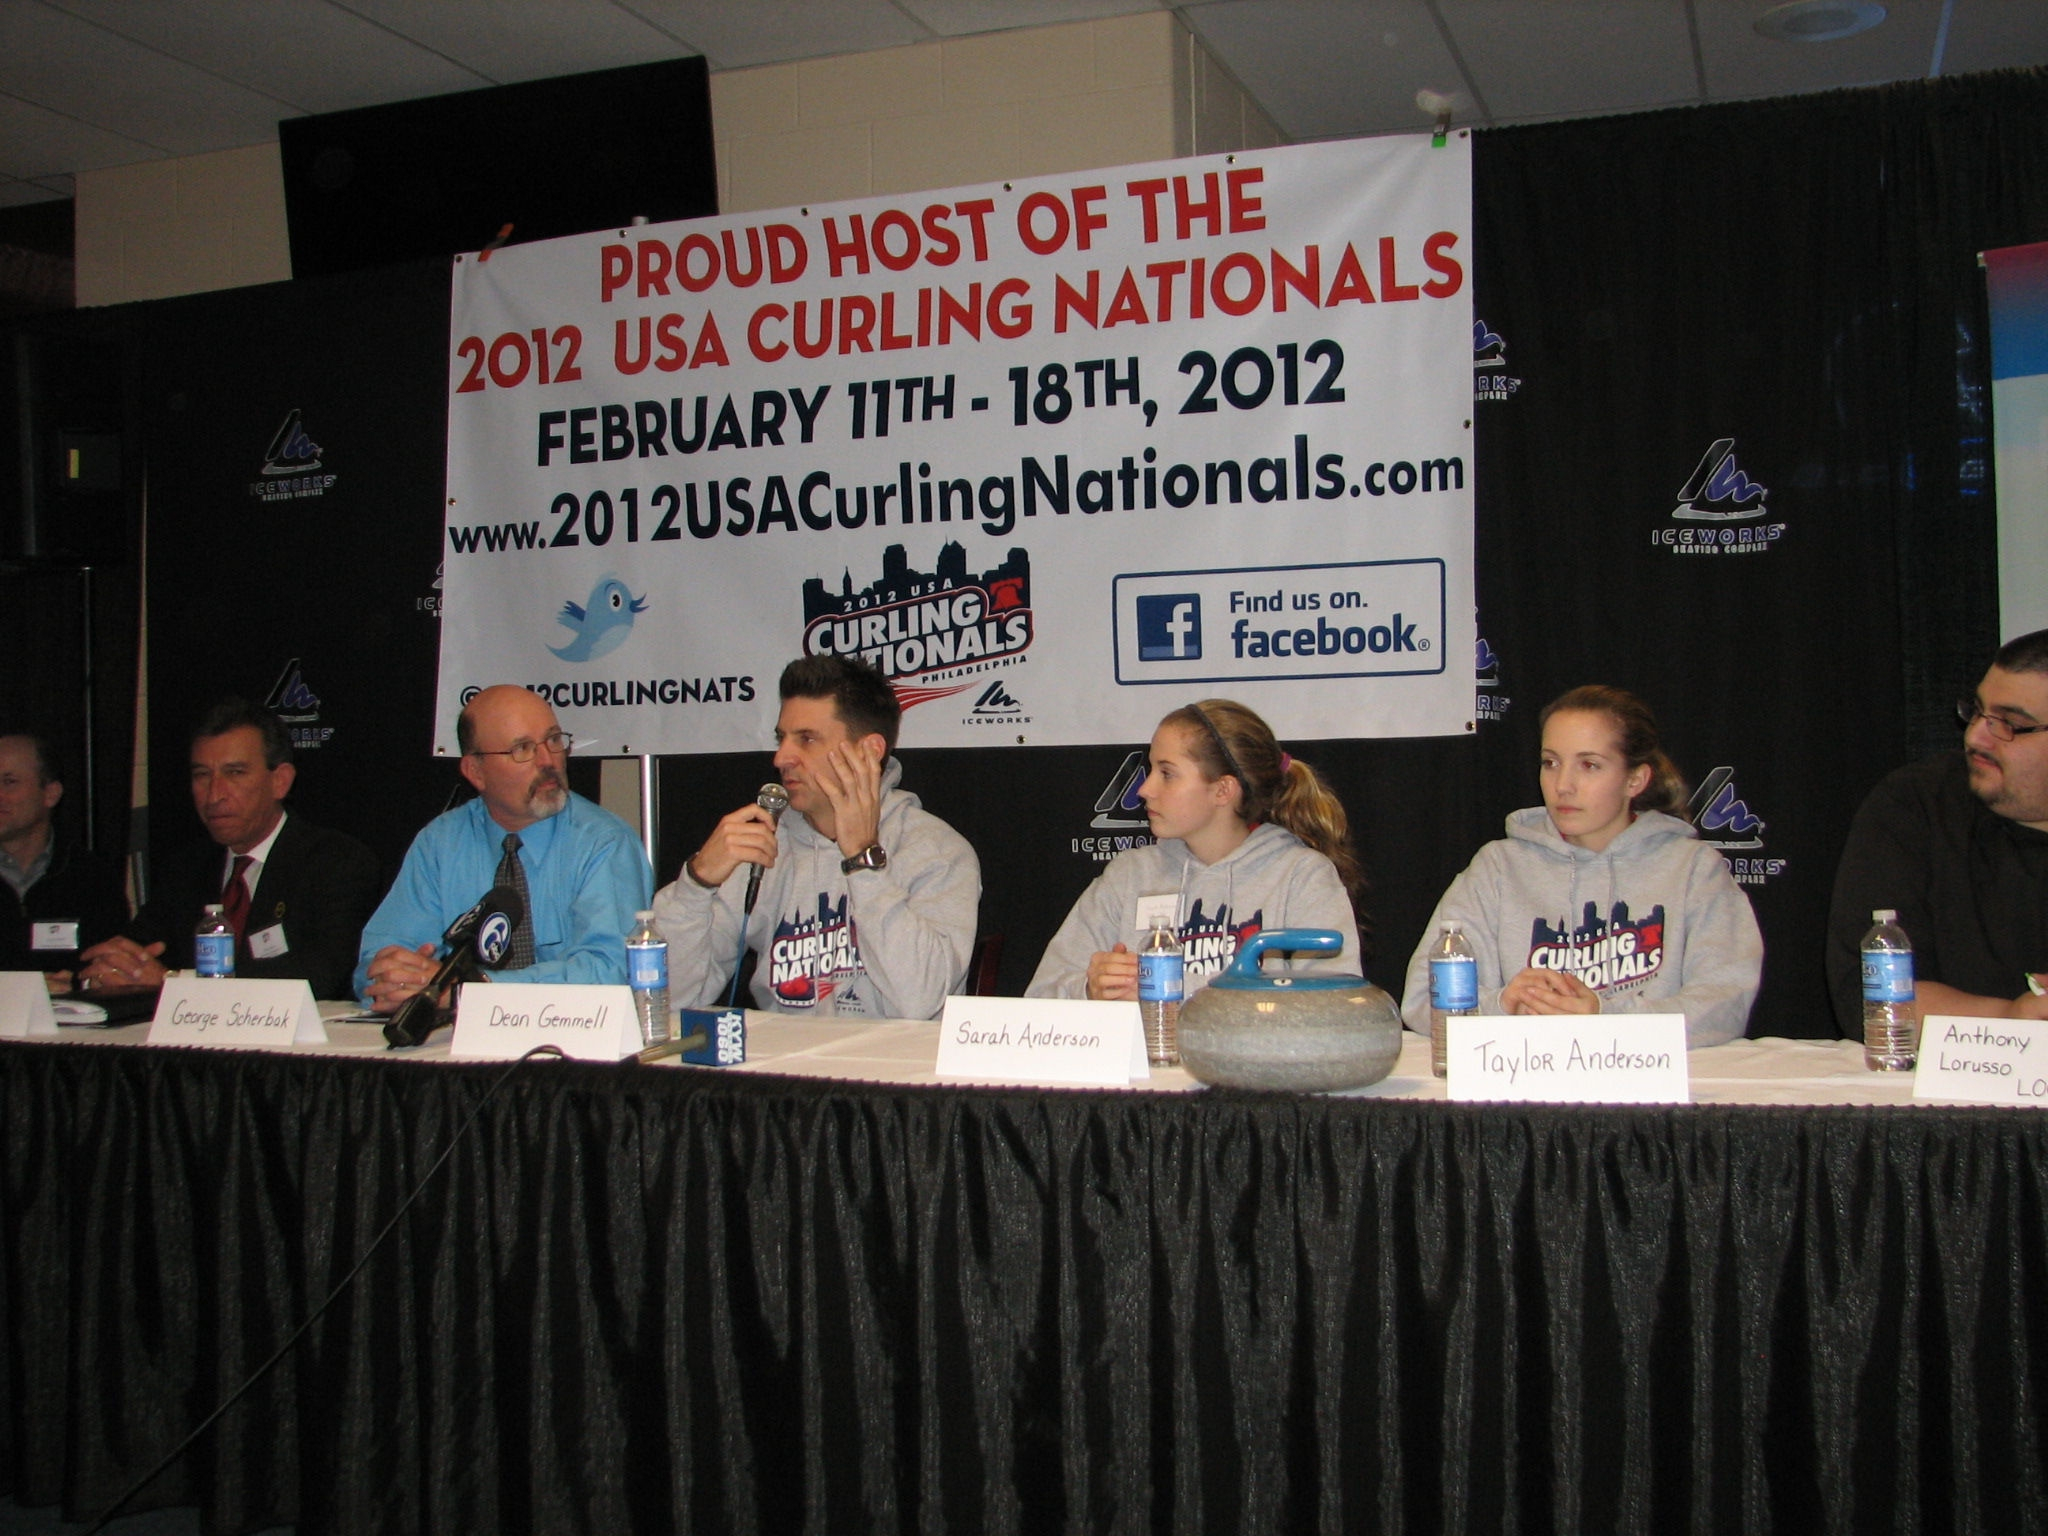 National Curling Championships coming to Aston this week